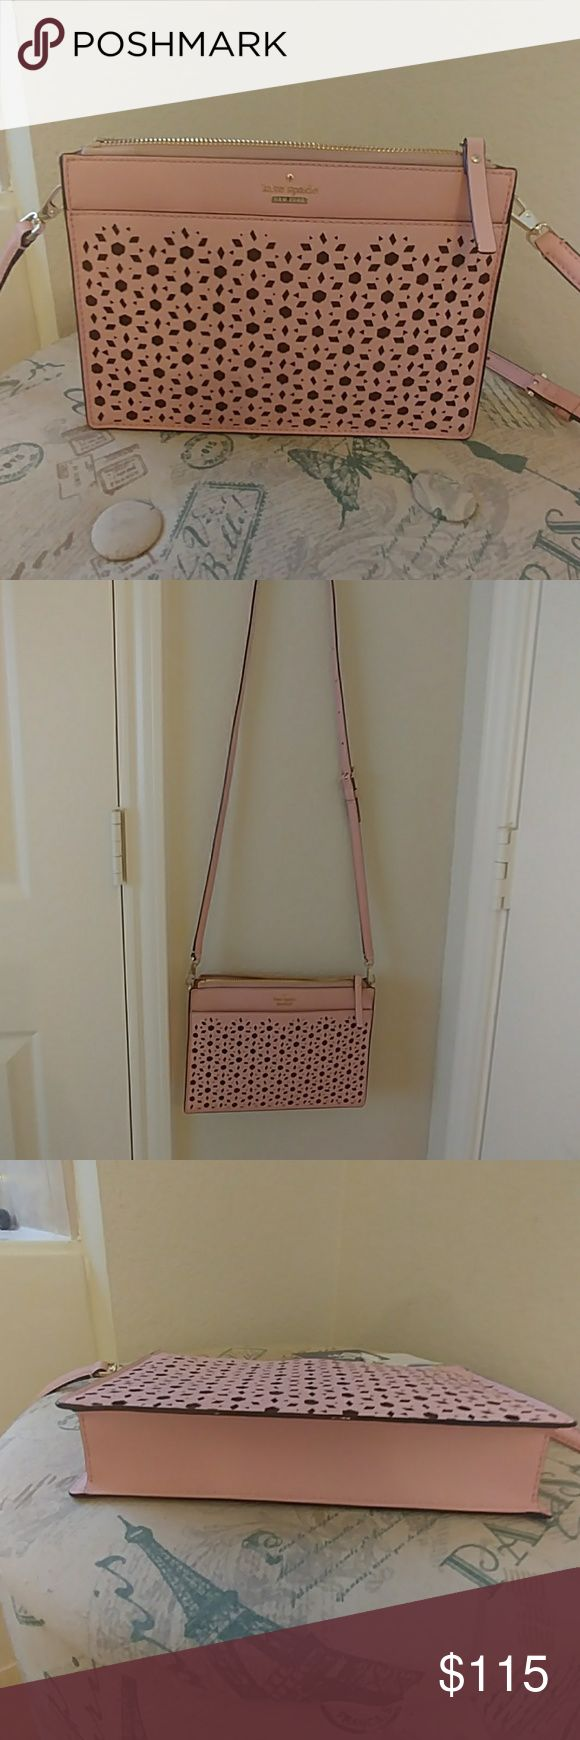 Kate Spade New York Cameron Crossbody Comes with the care card. Excellent condition. With dust bag Bags Crossbody Bags